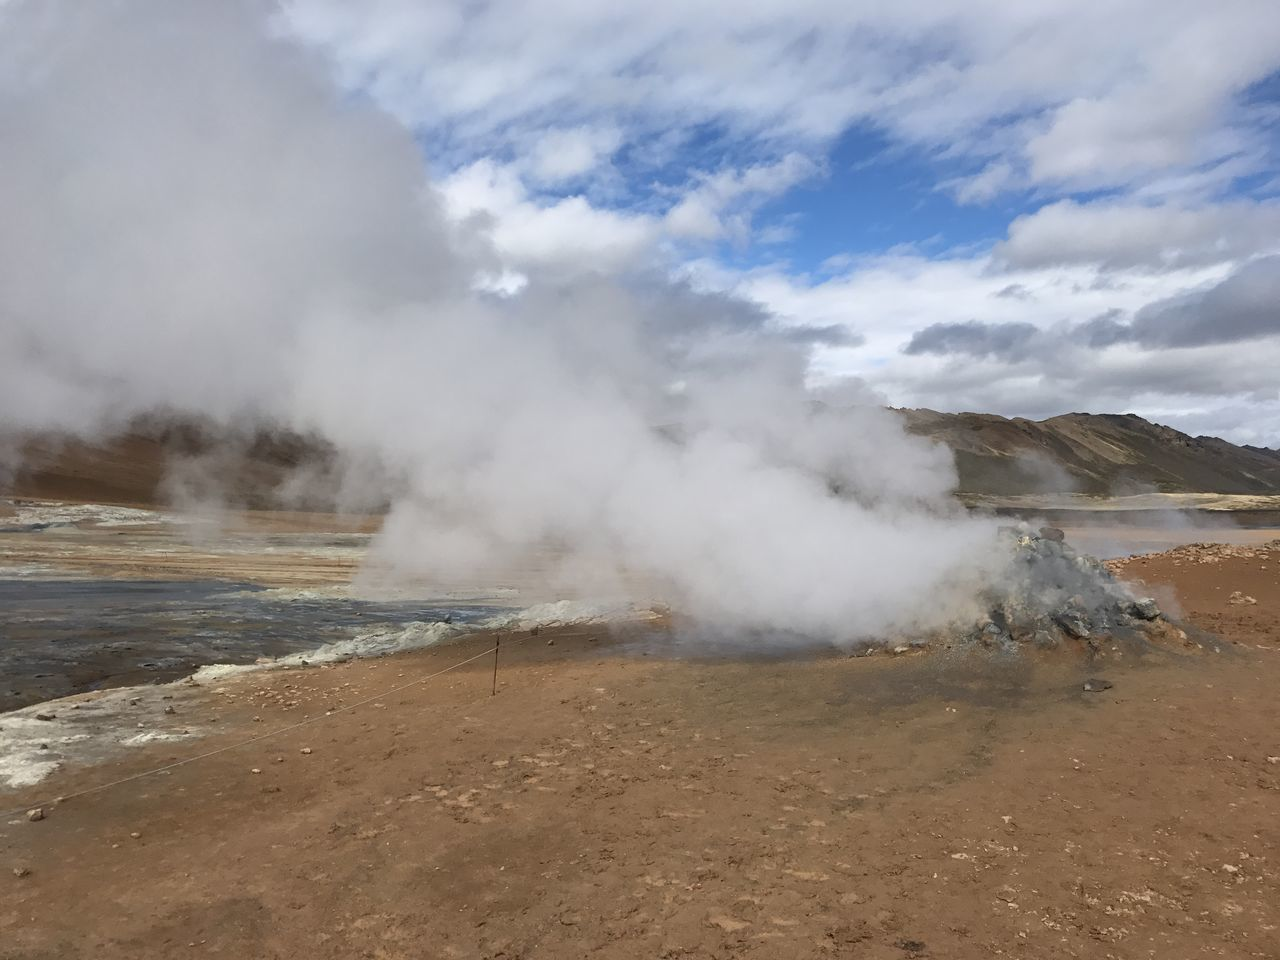 geology, smoke - physical structure, steam, geyser, nature, physical geography, heat - temperature, landscape, outdoors, hot spring, day, beauty in nature, volcanic landscape, no people, erupting, scenics, sky, power in nature